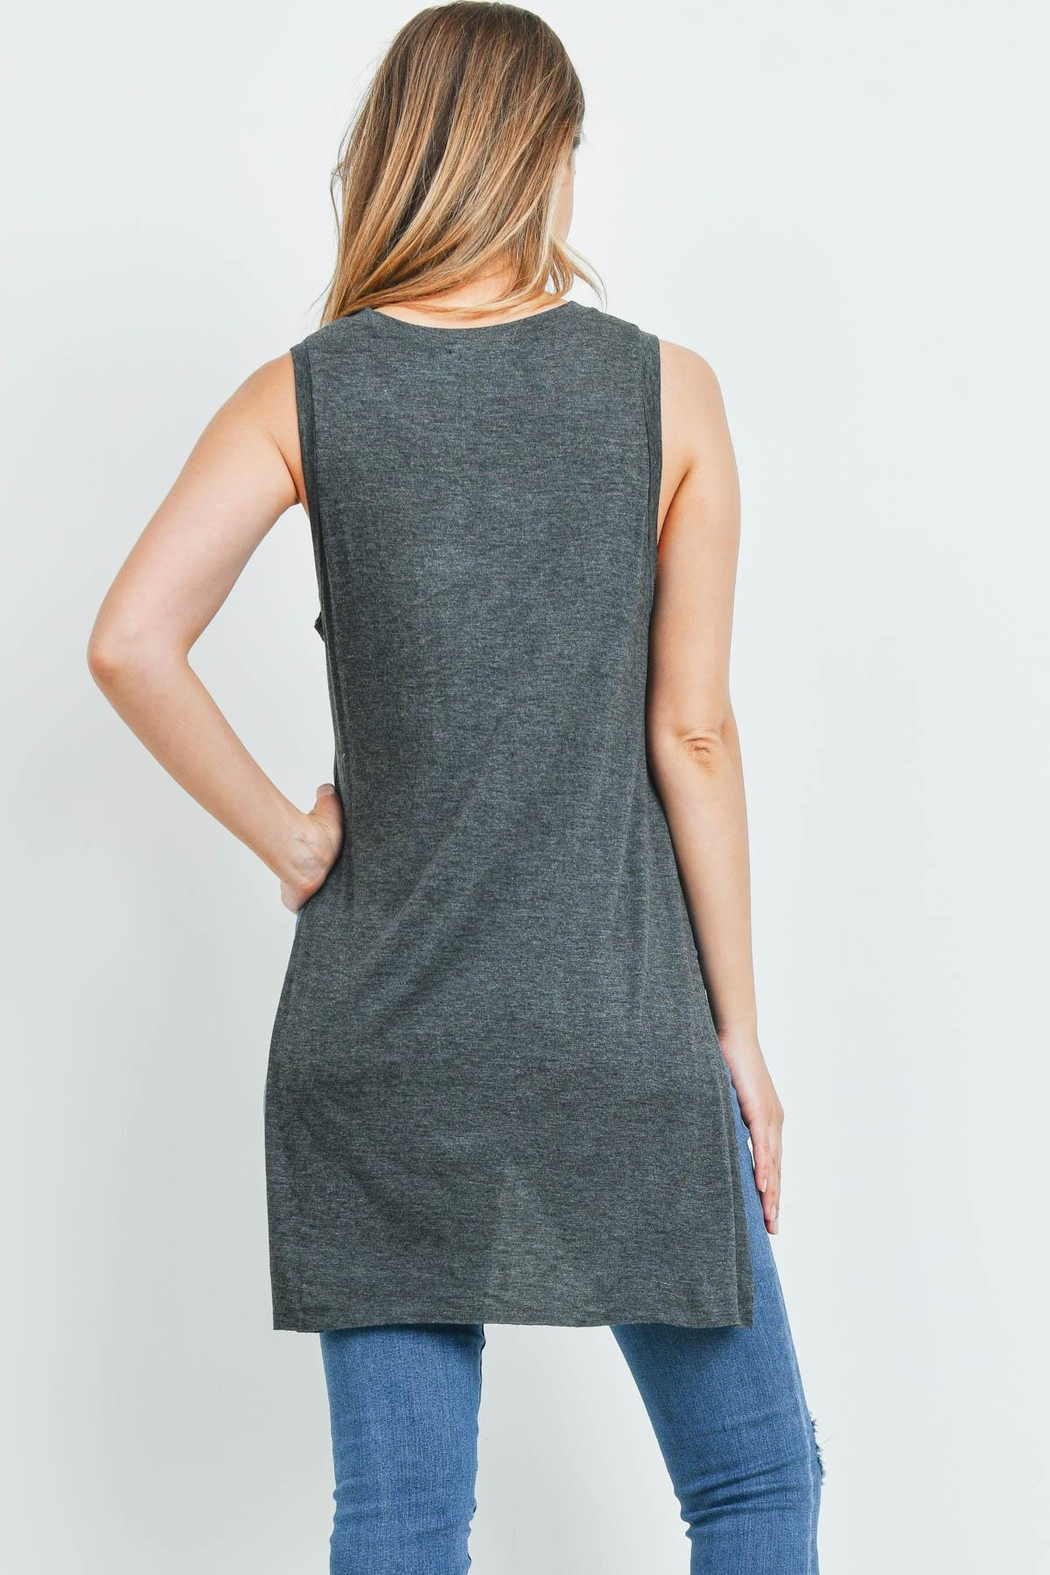 Riah Fashion Charcoal Top - Front Full Image